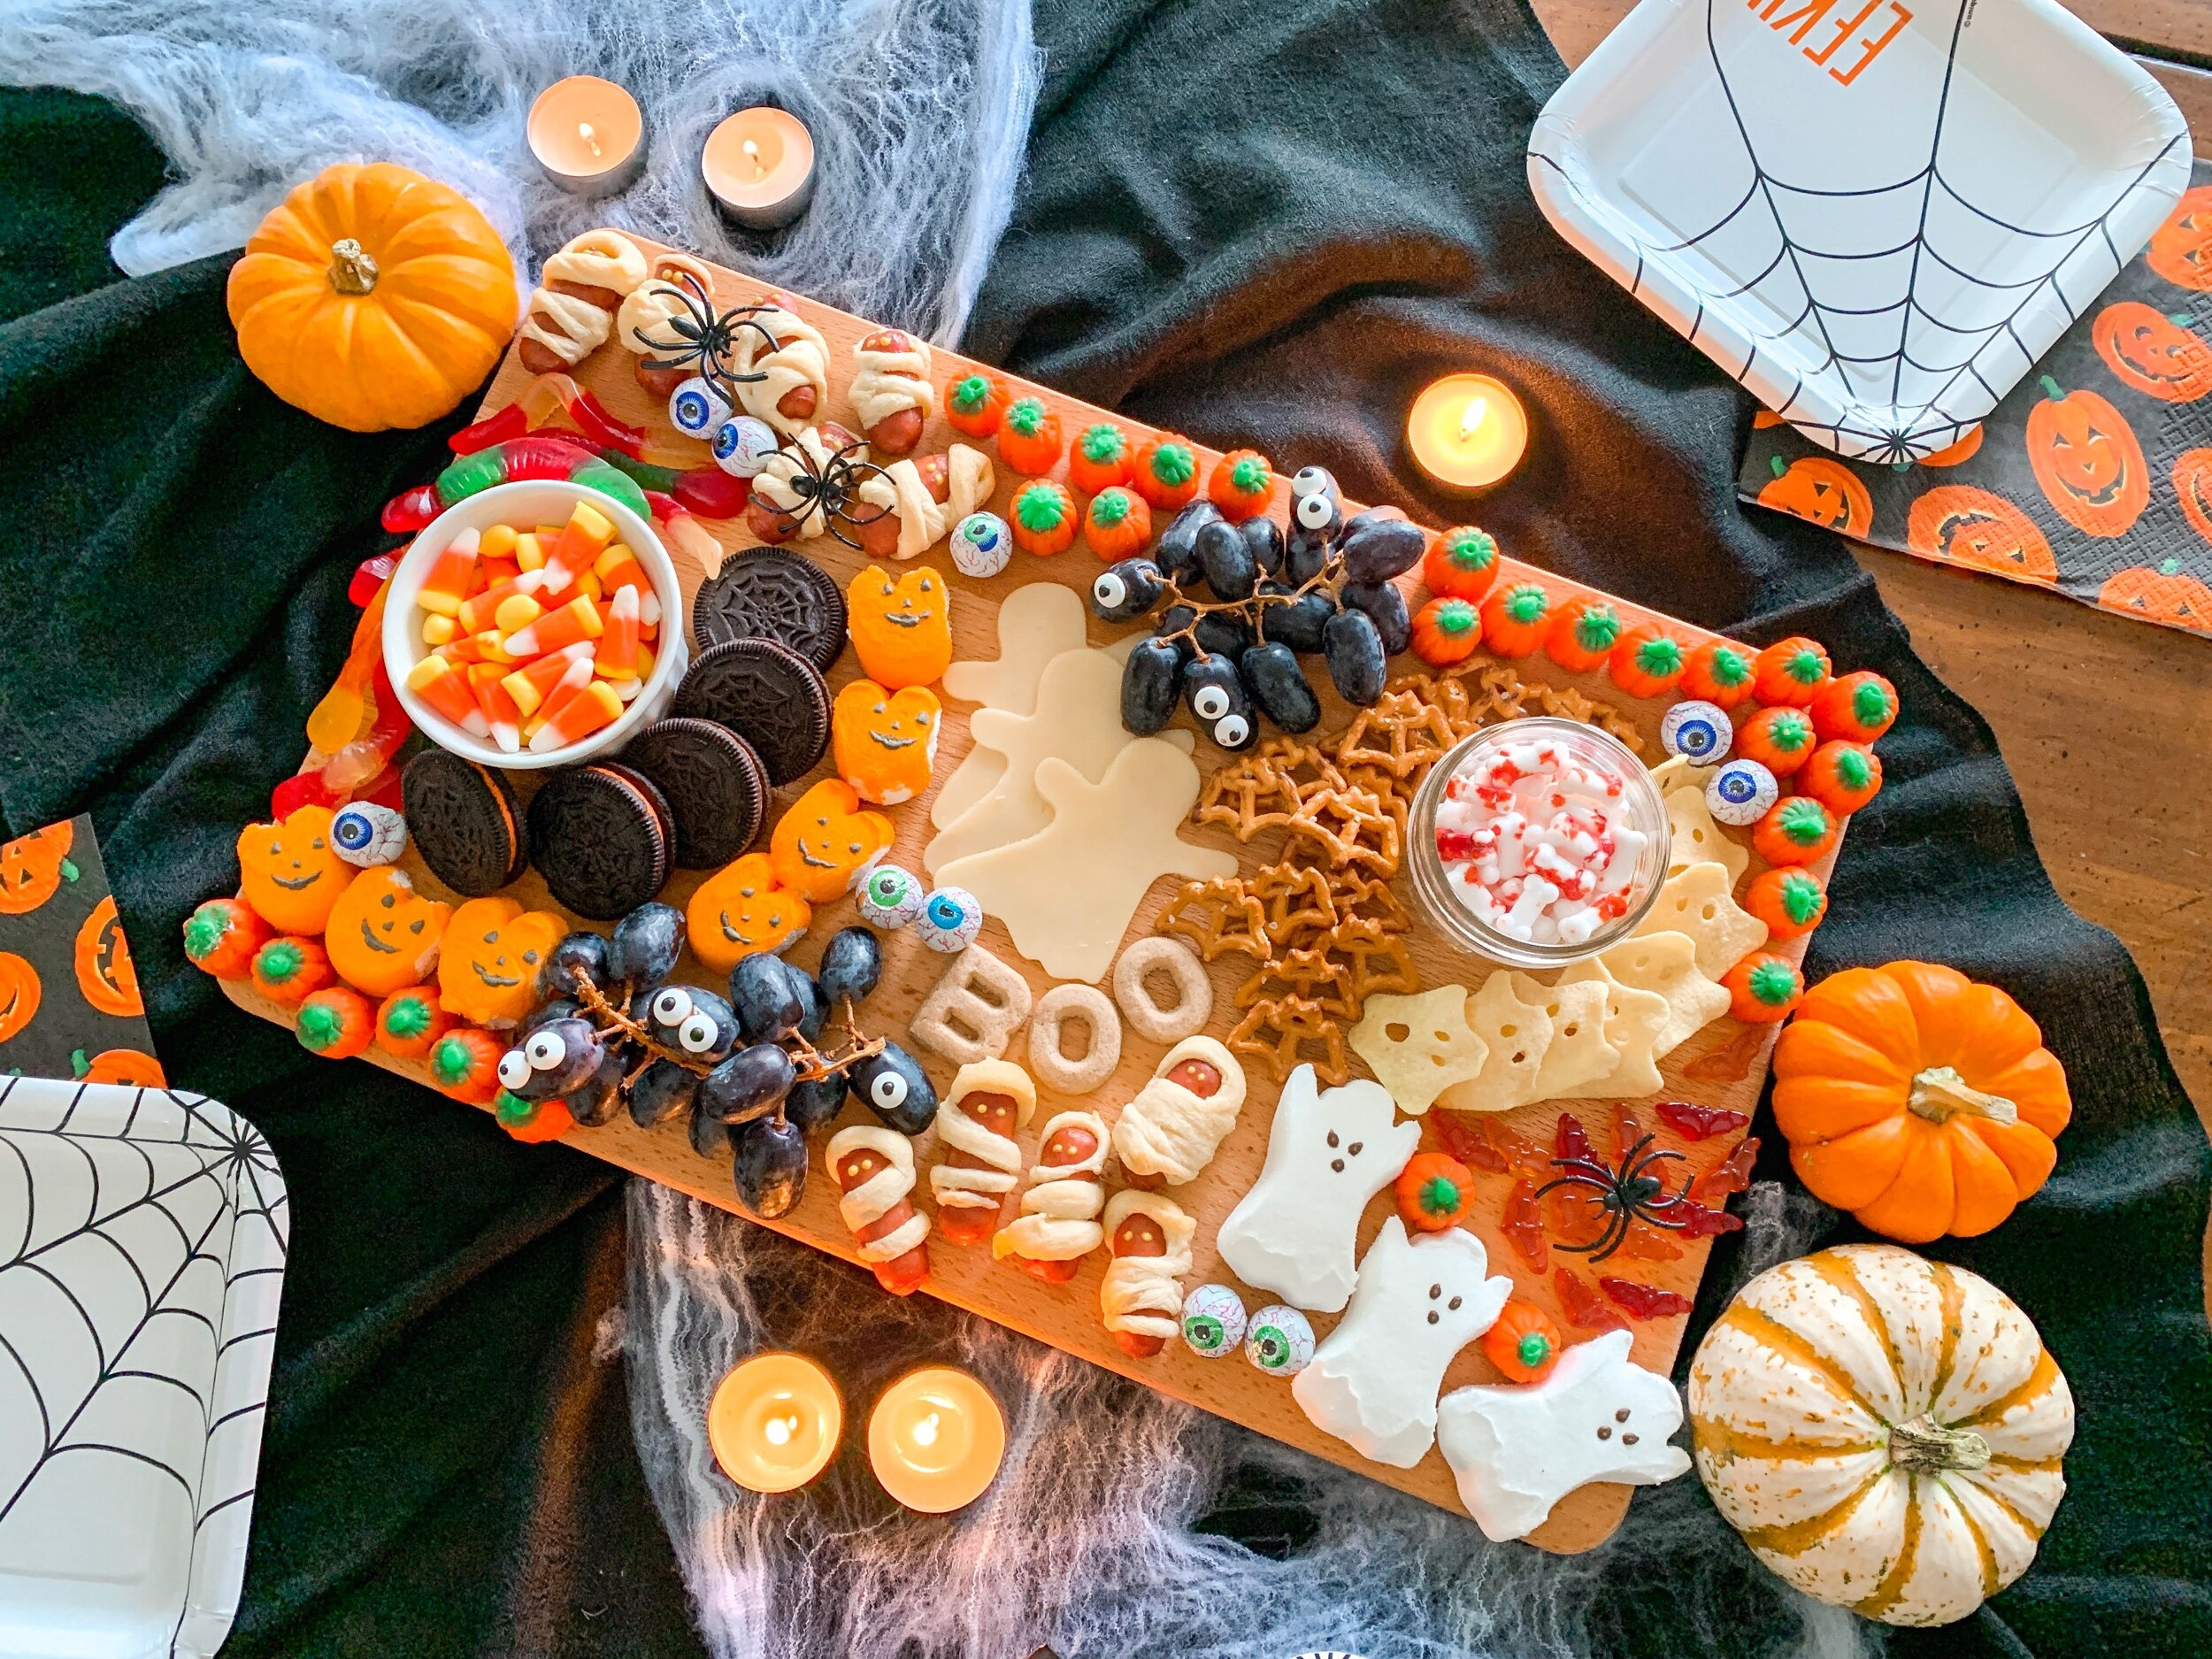 Mix candy, snacks and fruit for a fun and festive Halloween themed charcuterie board.